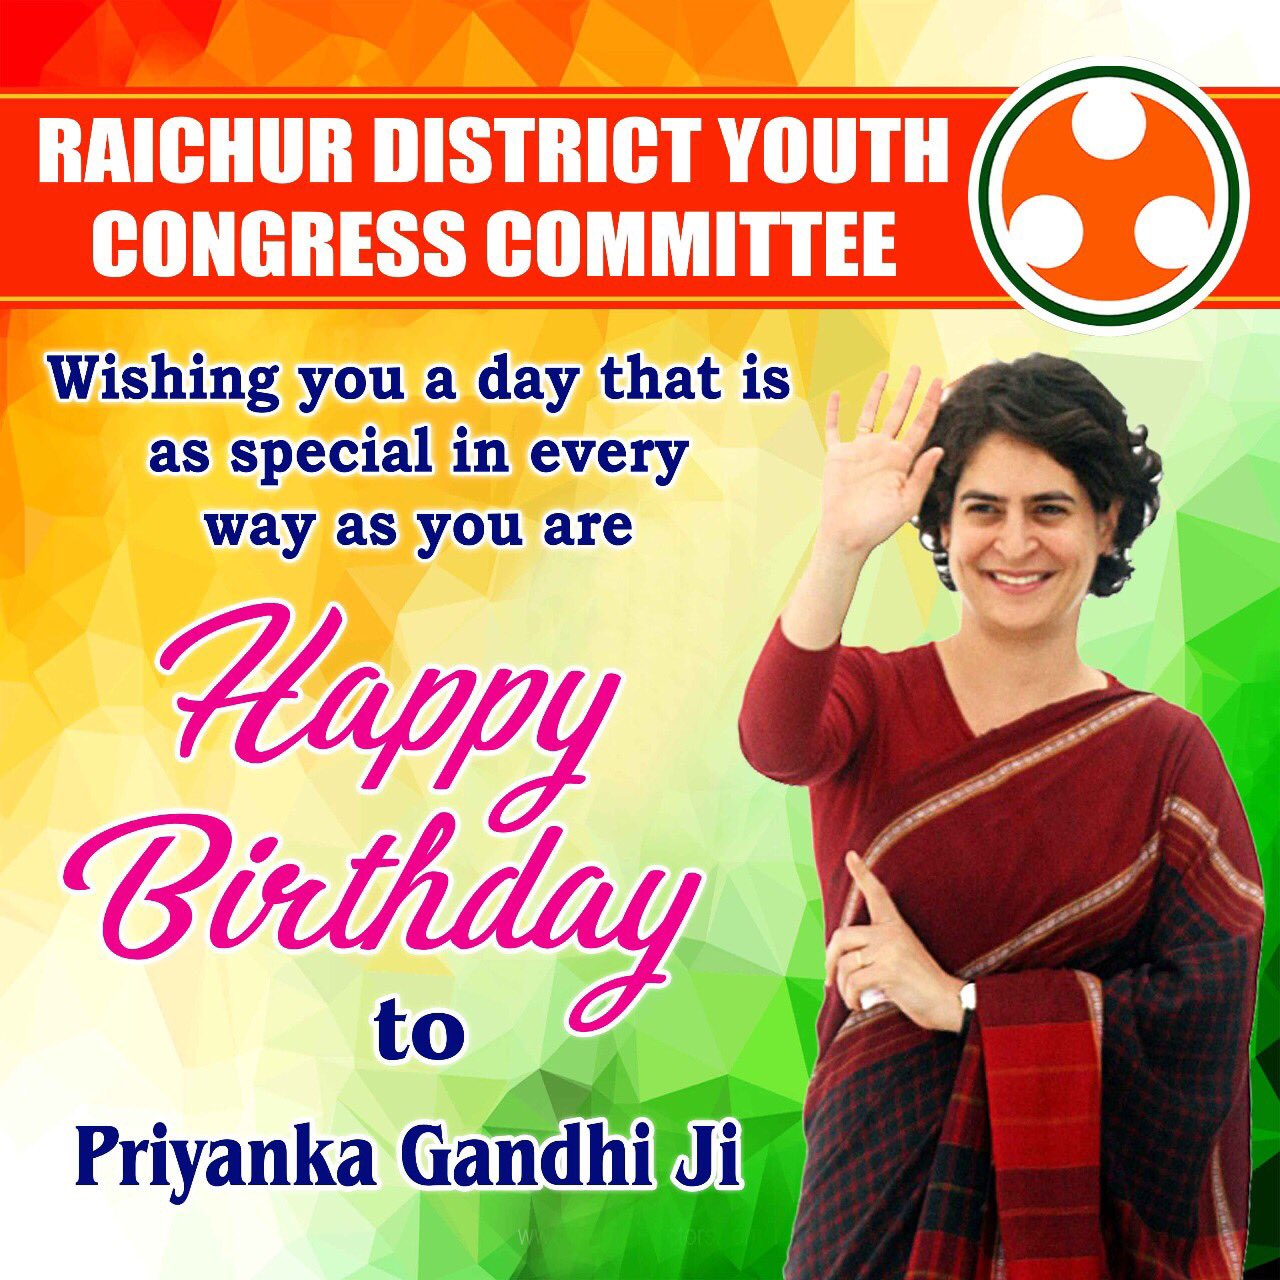 Wishes to Priyanka Gandhi a Very Happy Birthday! May the almighty bless you, always..